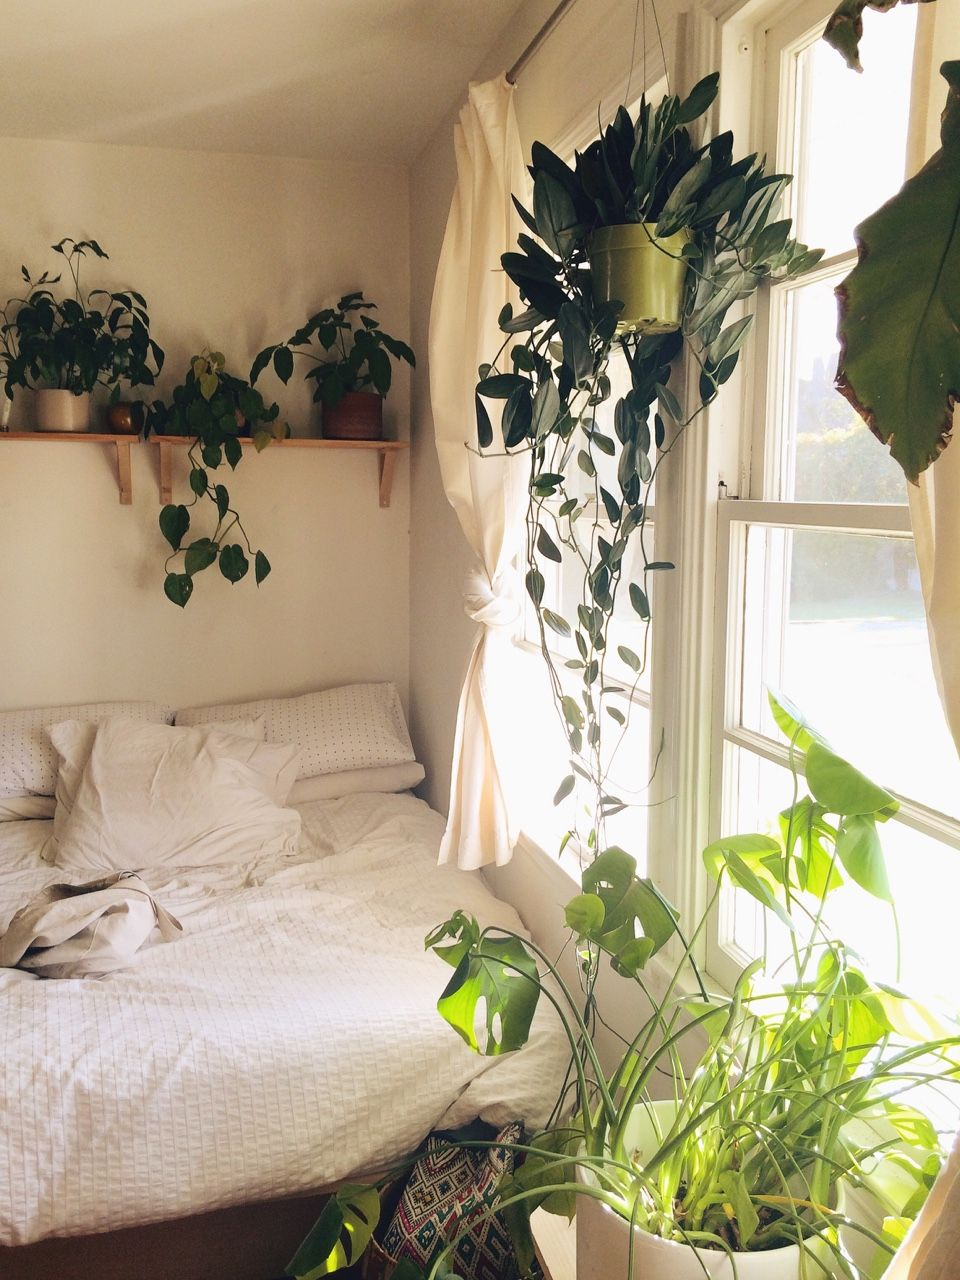 White bedroom with plants tumblr - Plants On A Shelf Bedroom Plants